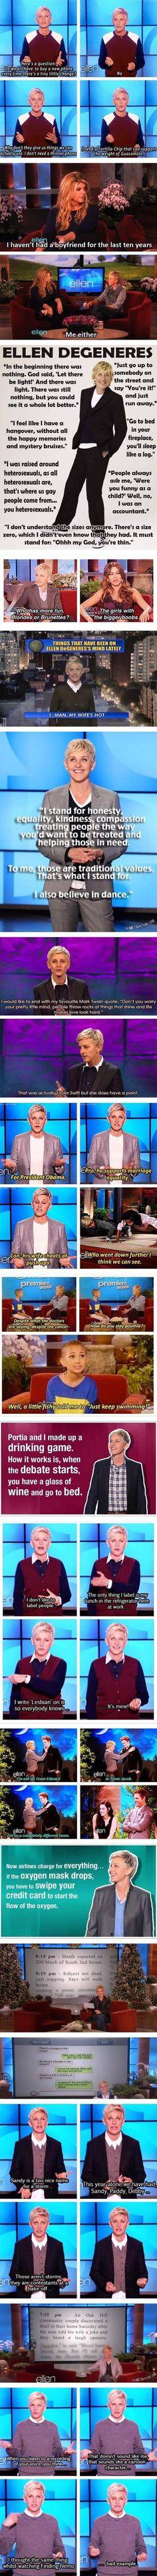 this makes me happy :)  Ellen is hilarious